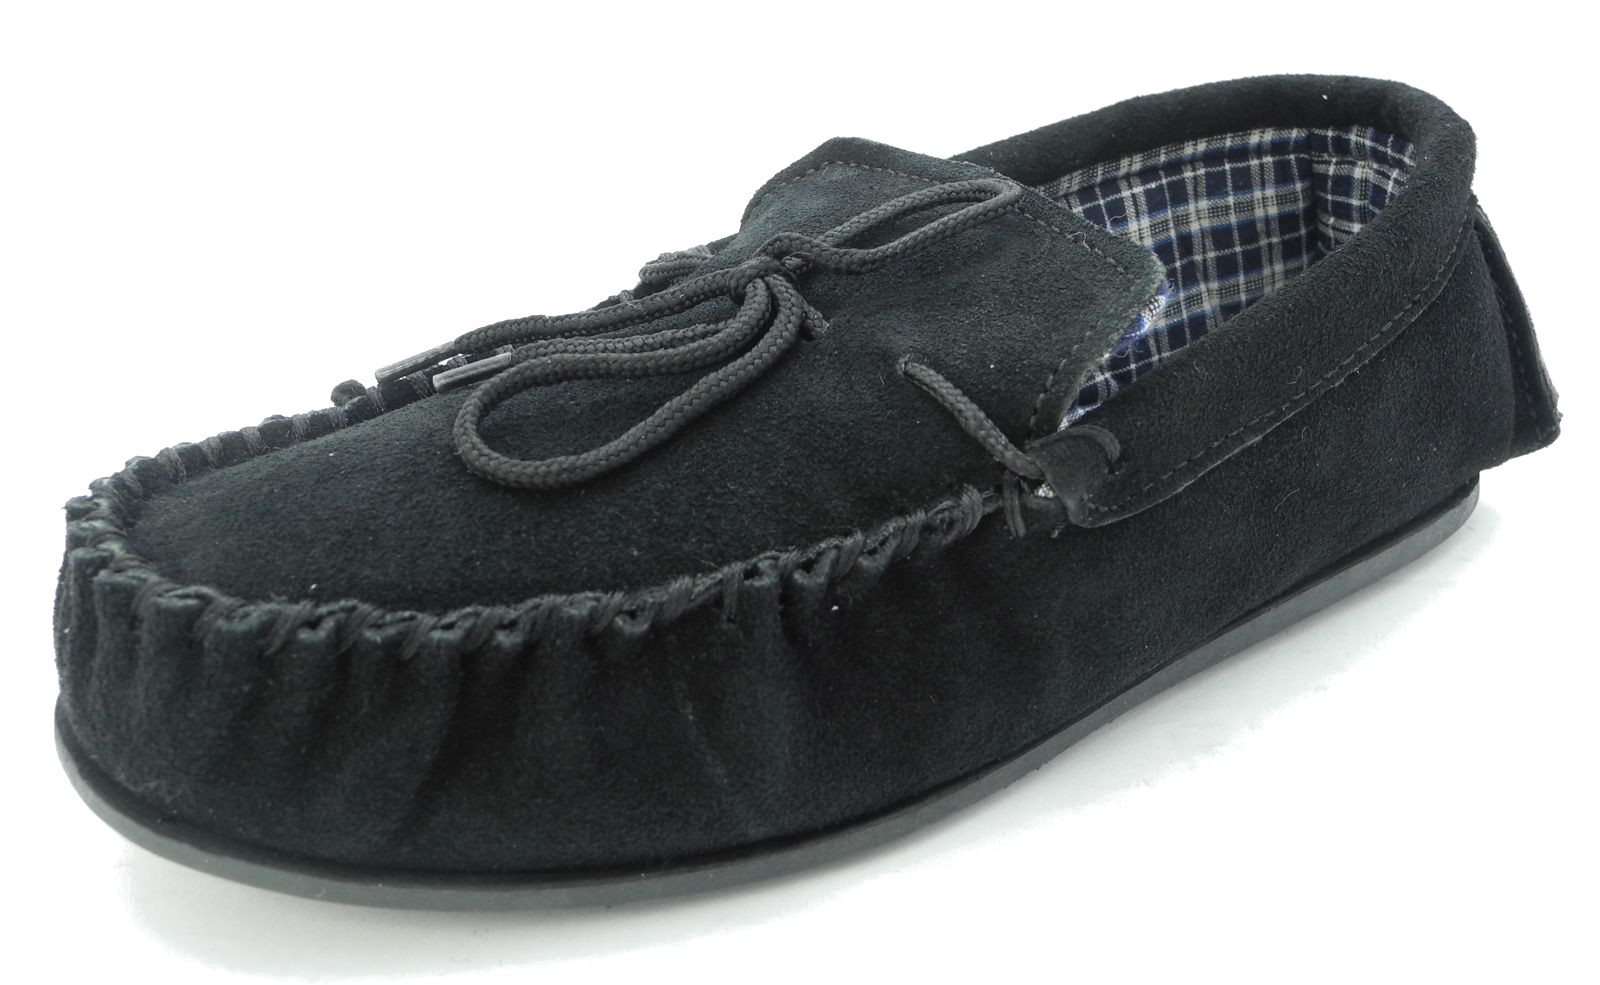 Mokkers - Mocasines para mujer, color azul, talla 42.5